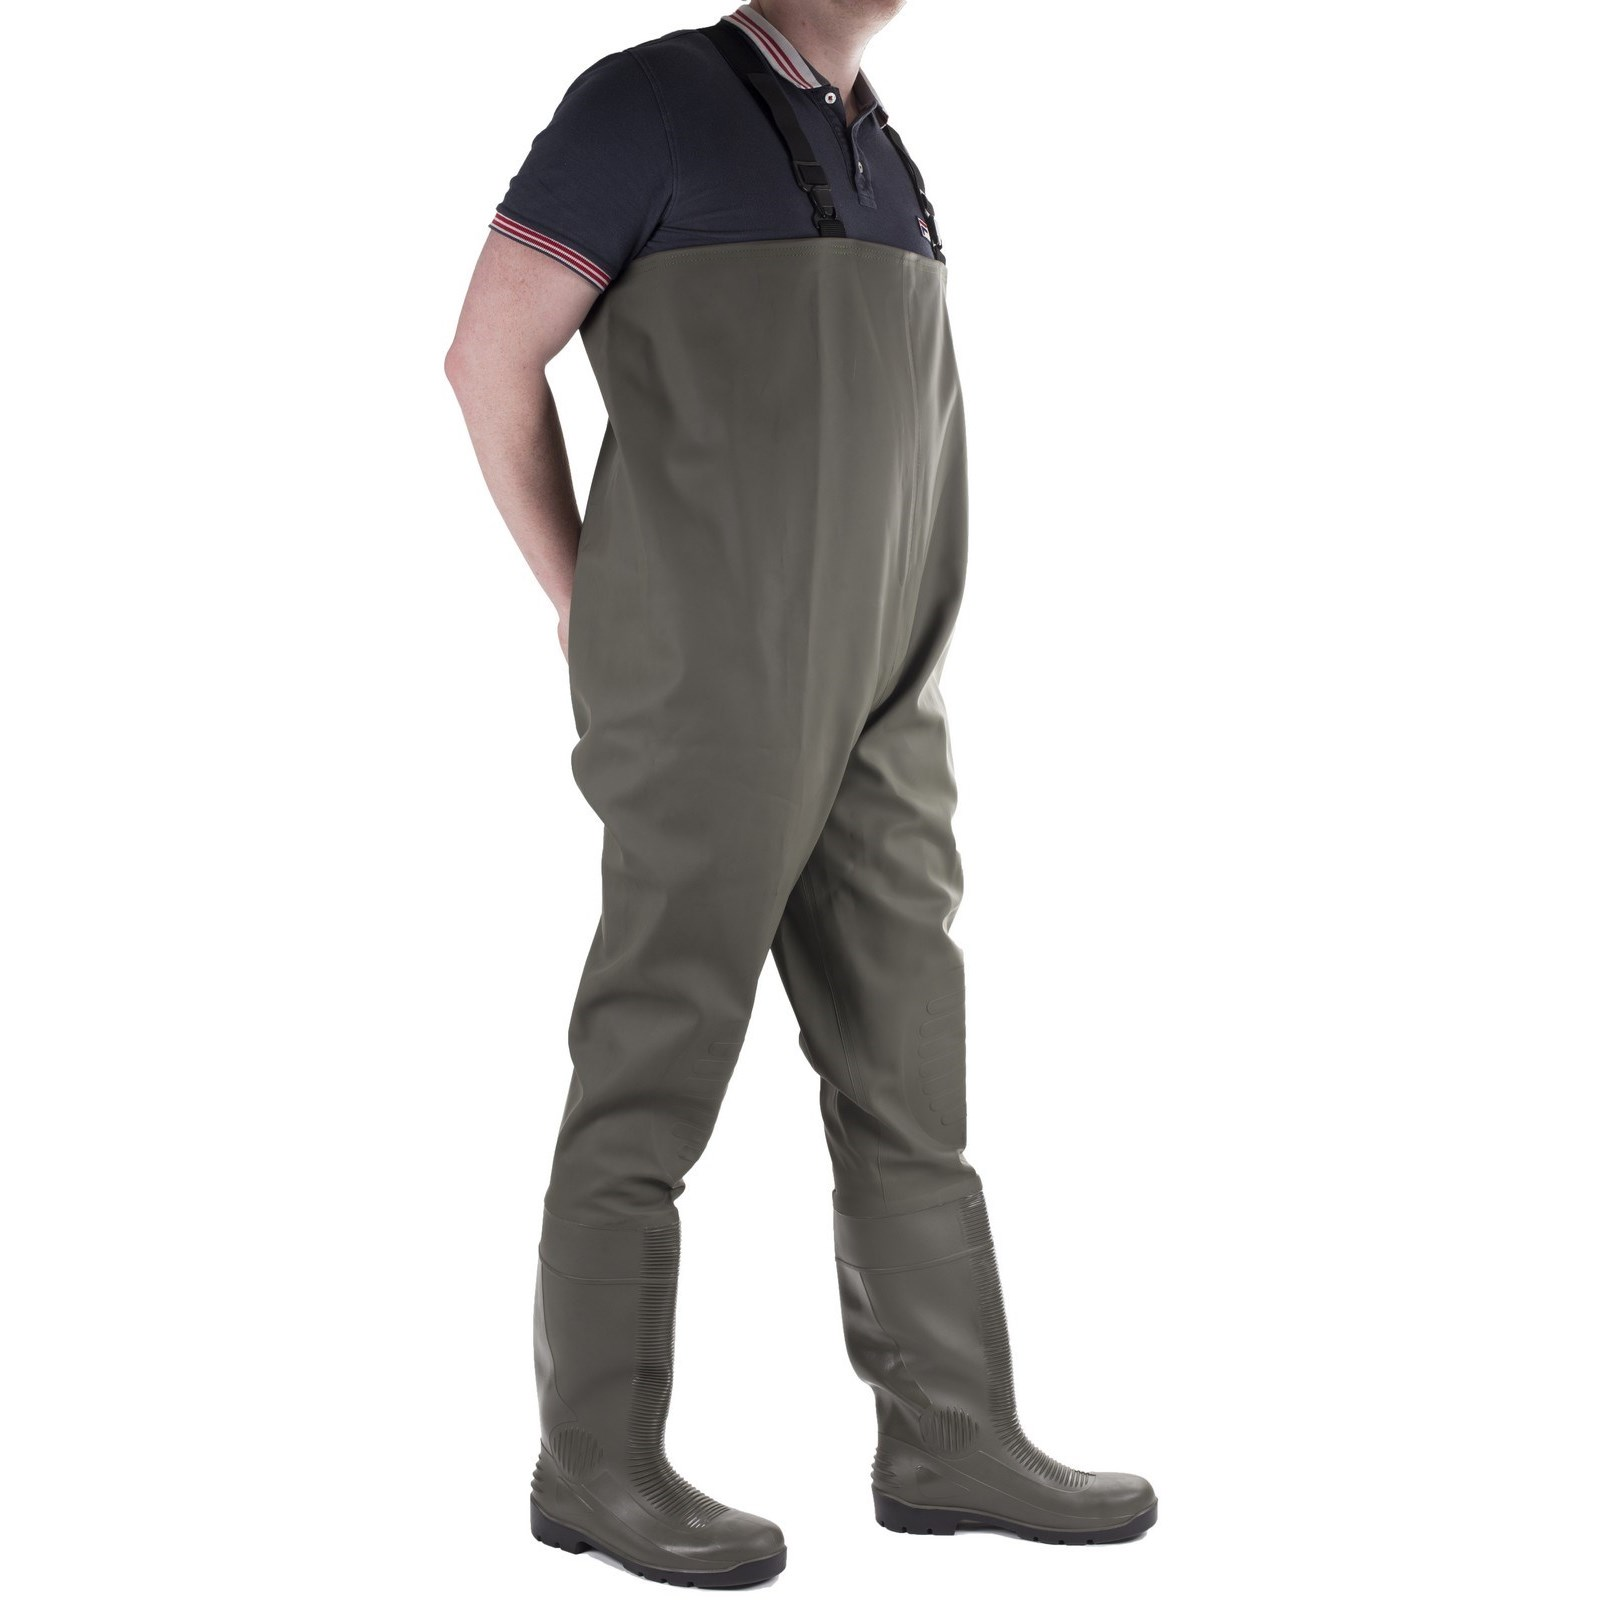 Wader Green Chest Tyne Long Comfortable Amblers Safety Dry vYq00n